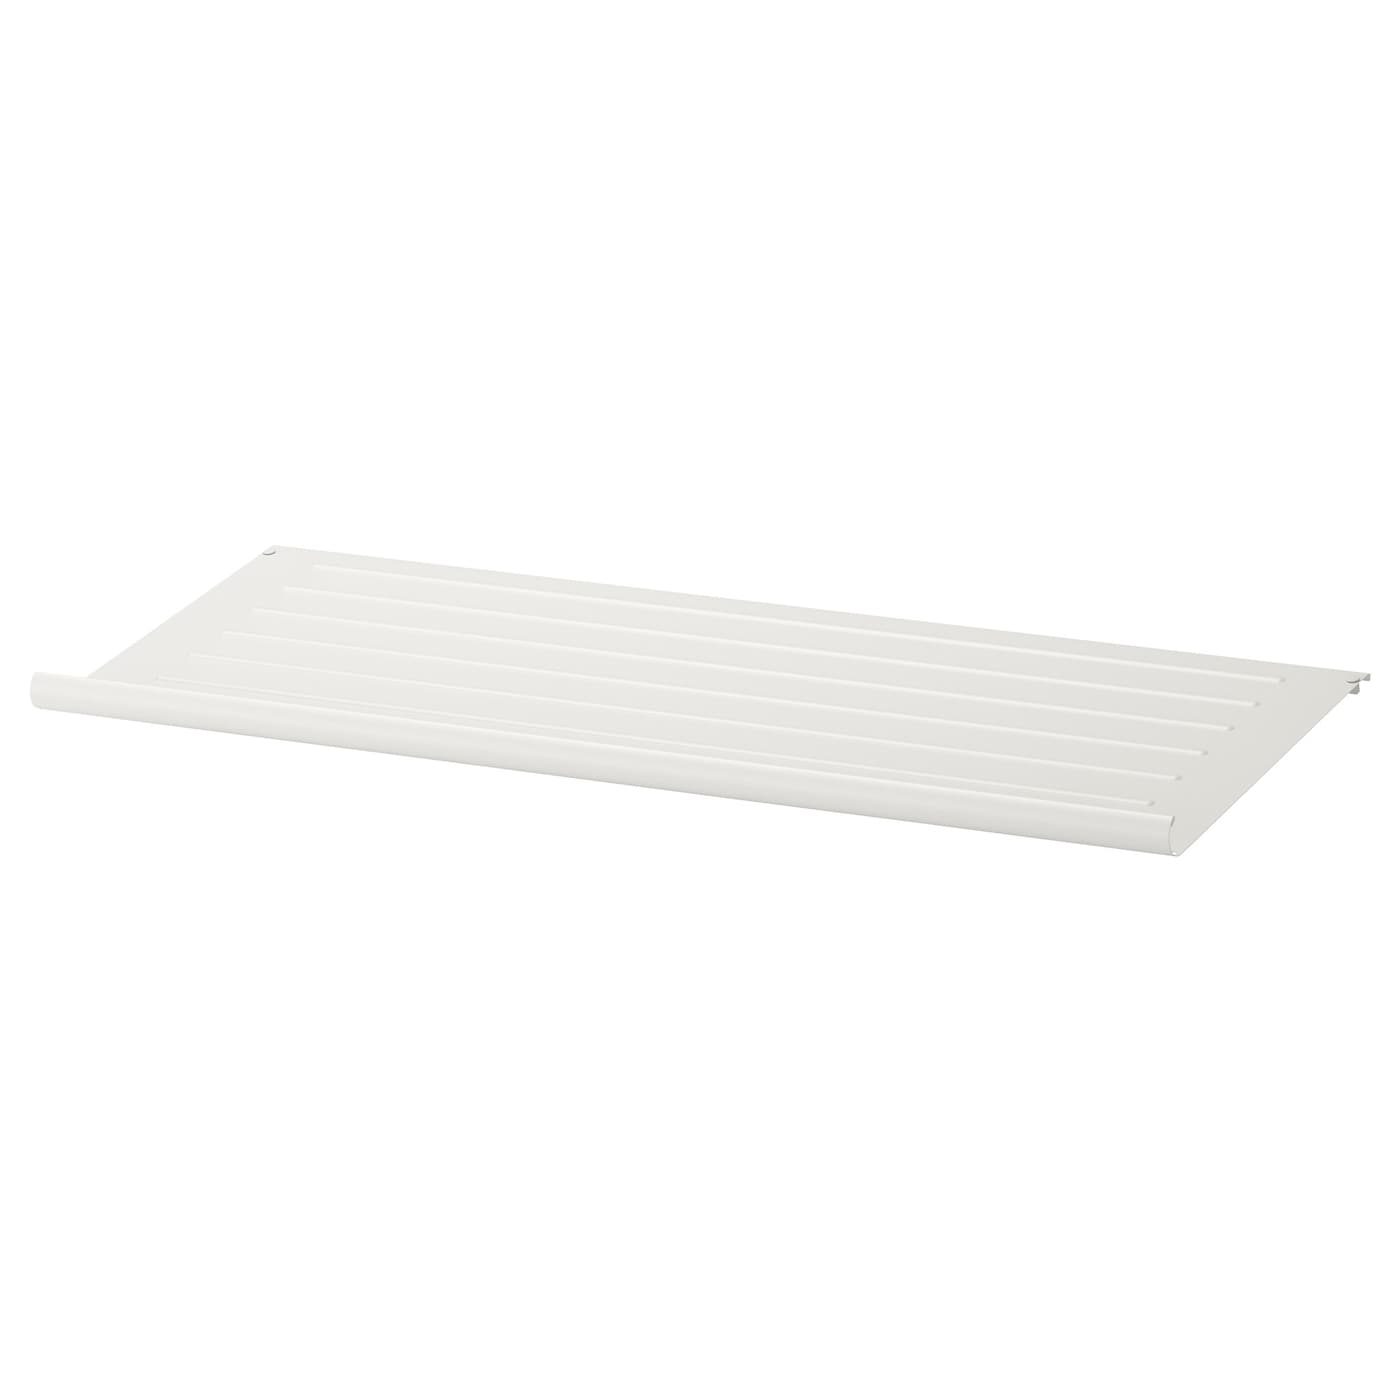 IKEA KOMPLEMENT shoe shelf 10 year guarantee. Read about the terms in the guarantee brochure.